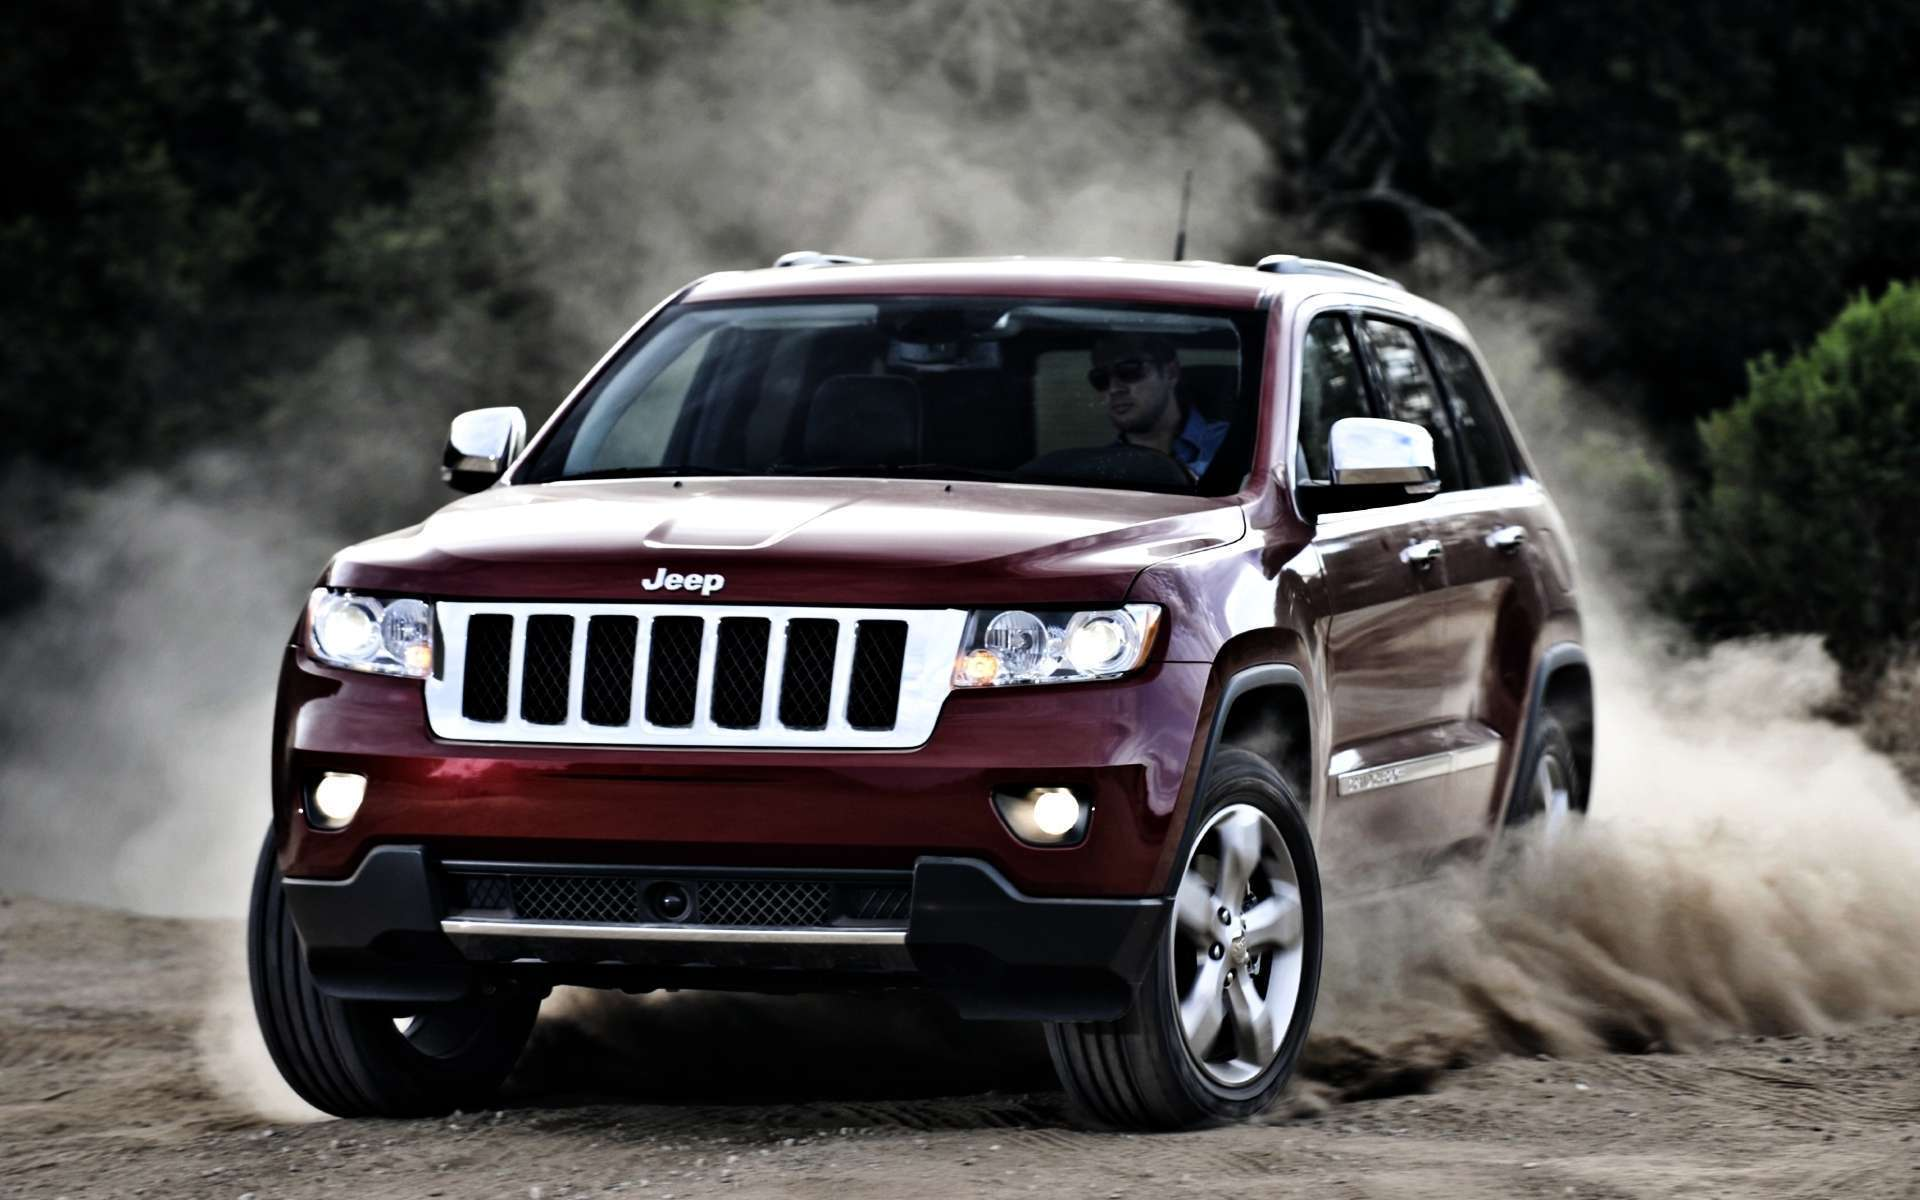 Jeep Car Images Hd: Jeep Grand Cherokee Hd Hd Wallpapers : Hd Car Wallpapers